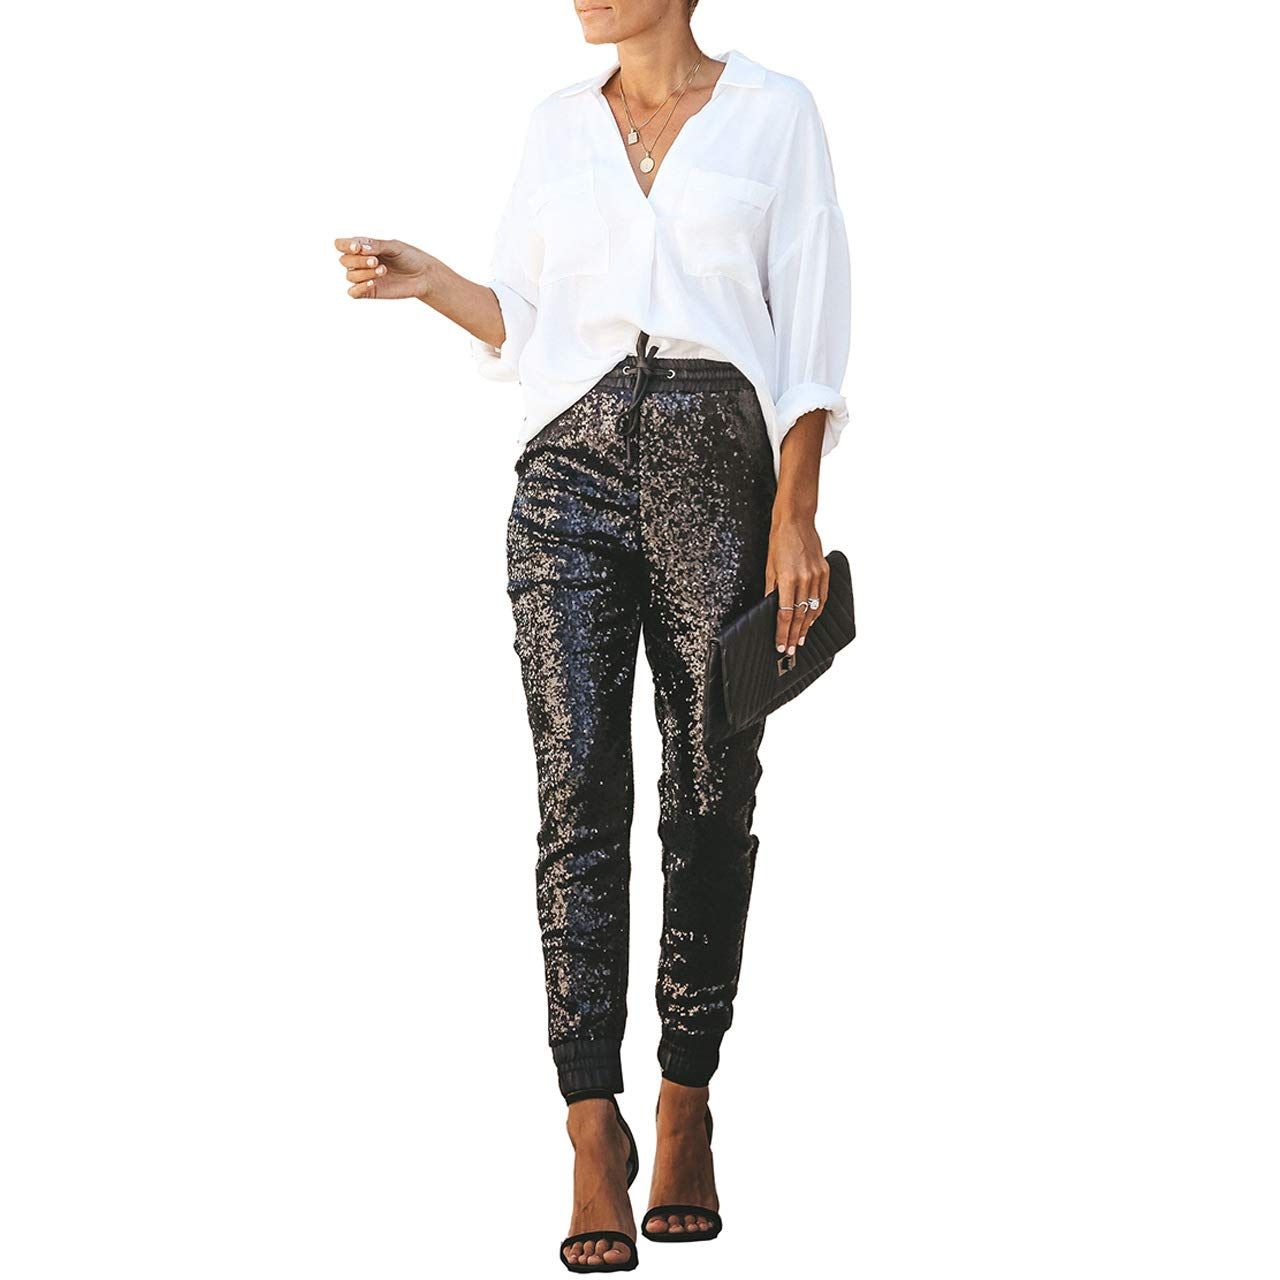 2dcabcaeeeb Salimdy Womens Fashion Sequin Pencil Pants with Drawstring Faux Leather  Patchwork Glitter Long Trousers at Amazon Women s Clothing store